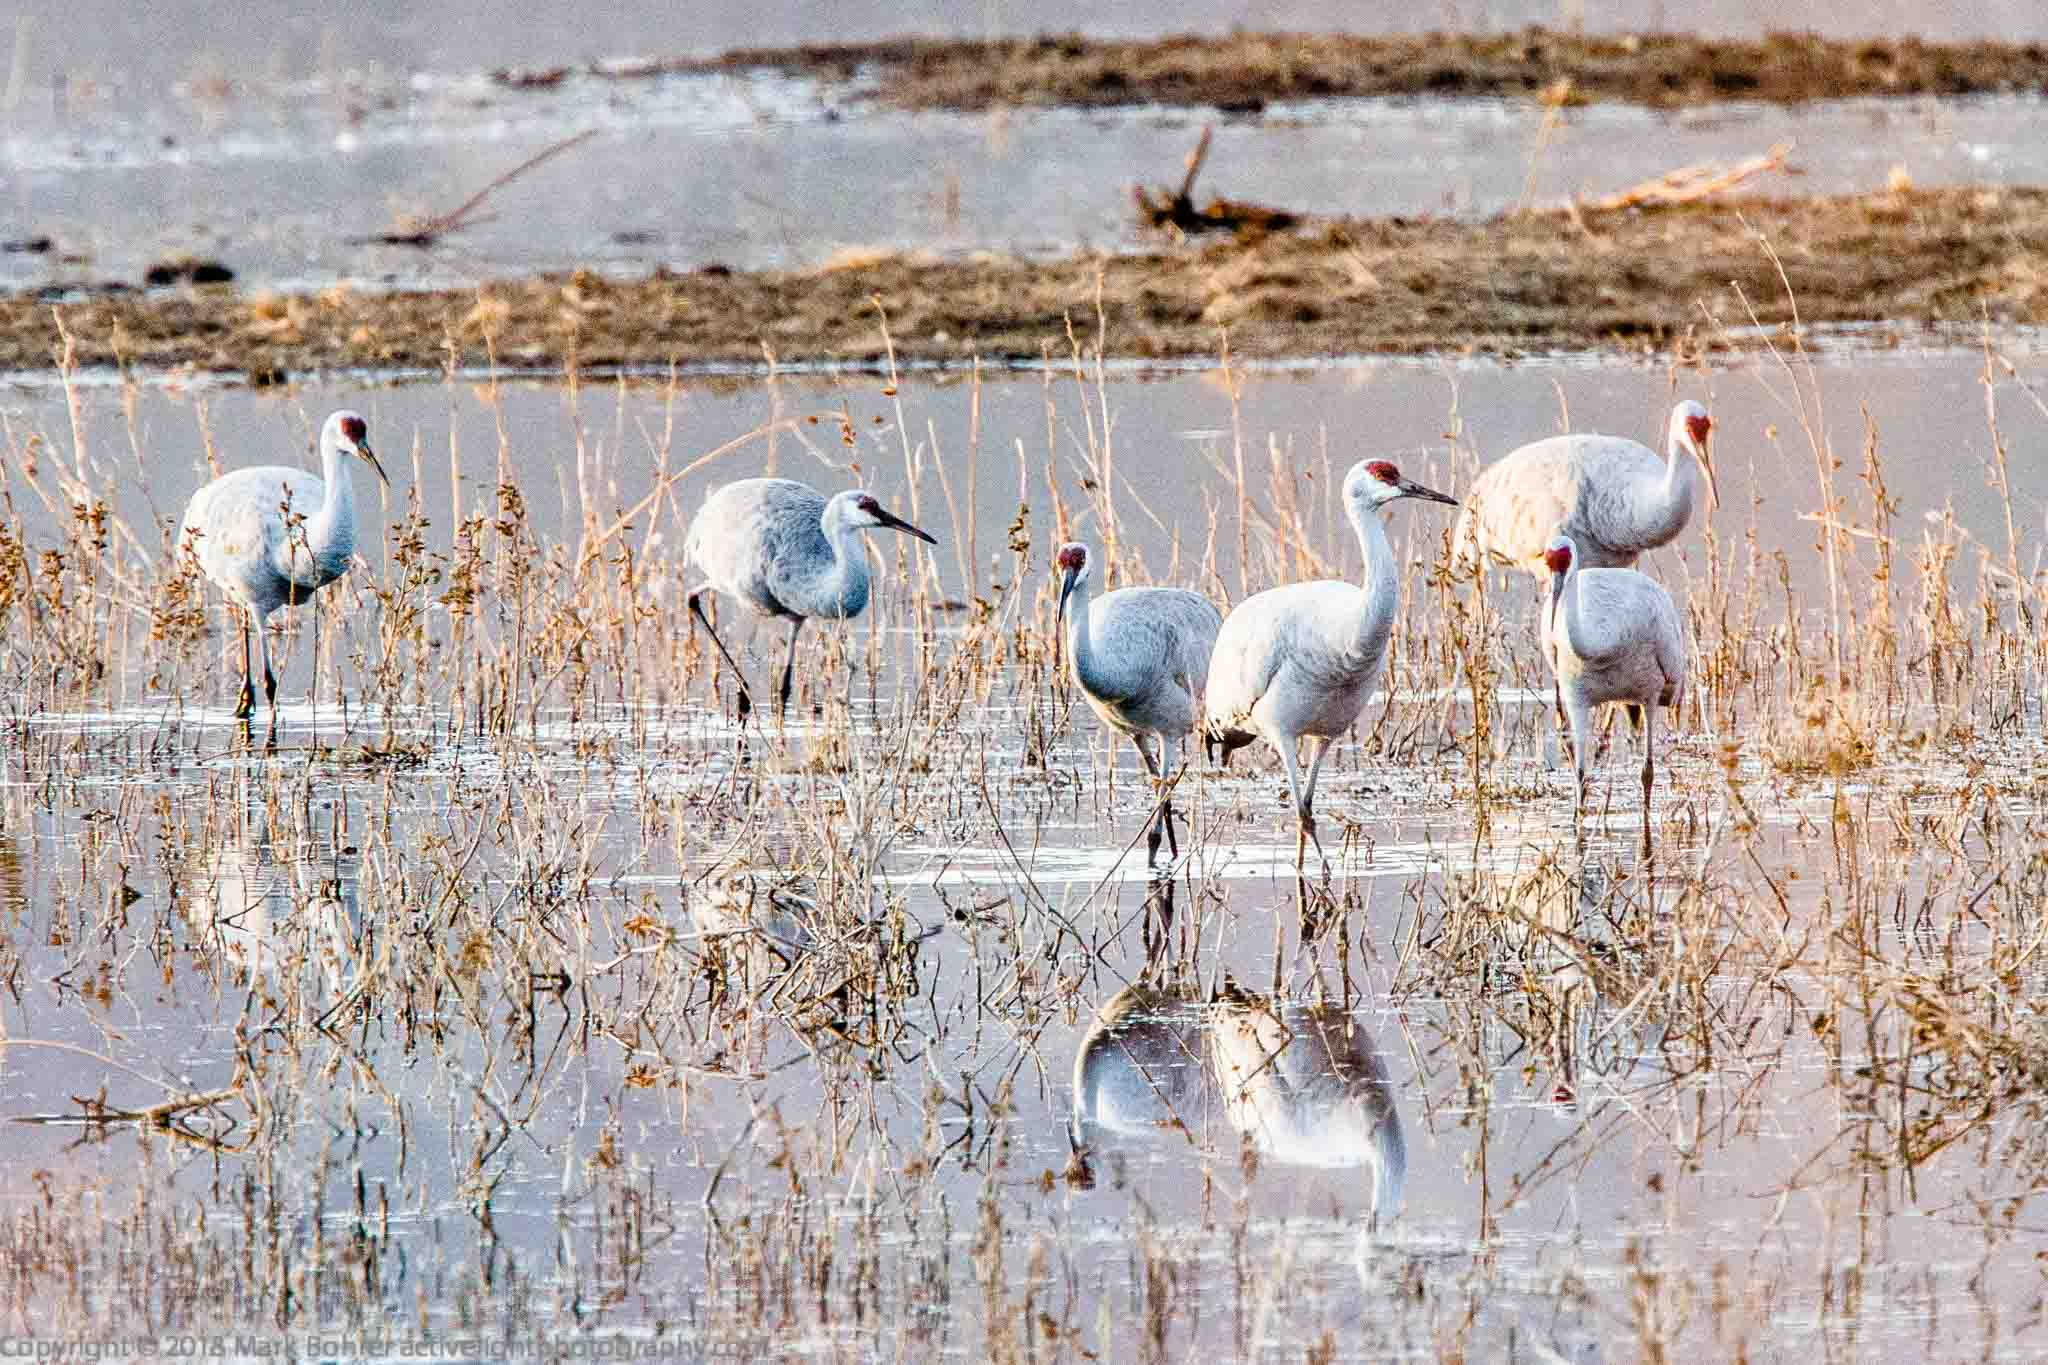 Sandhill cranes in the ponds, Bosque del Apache